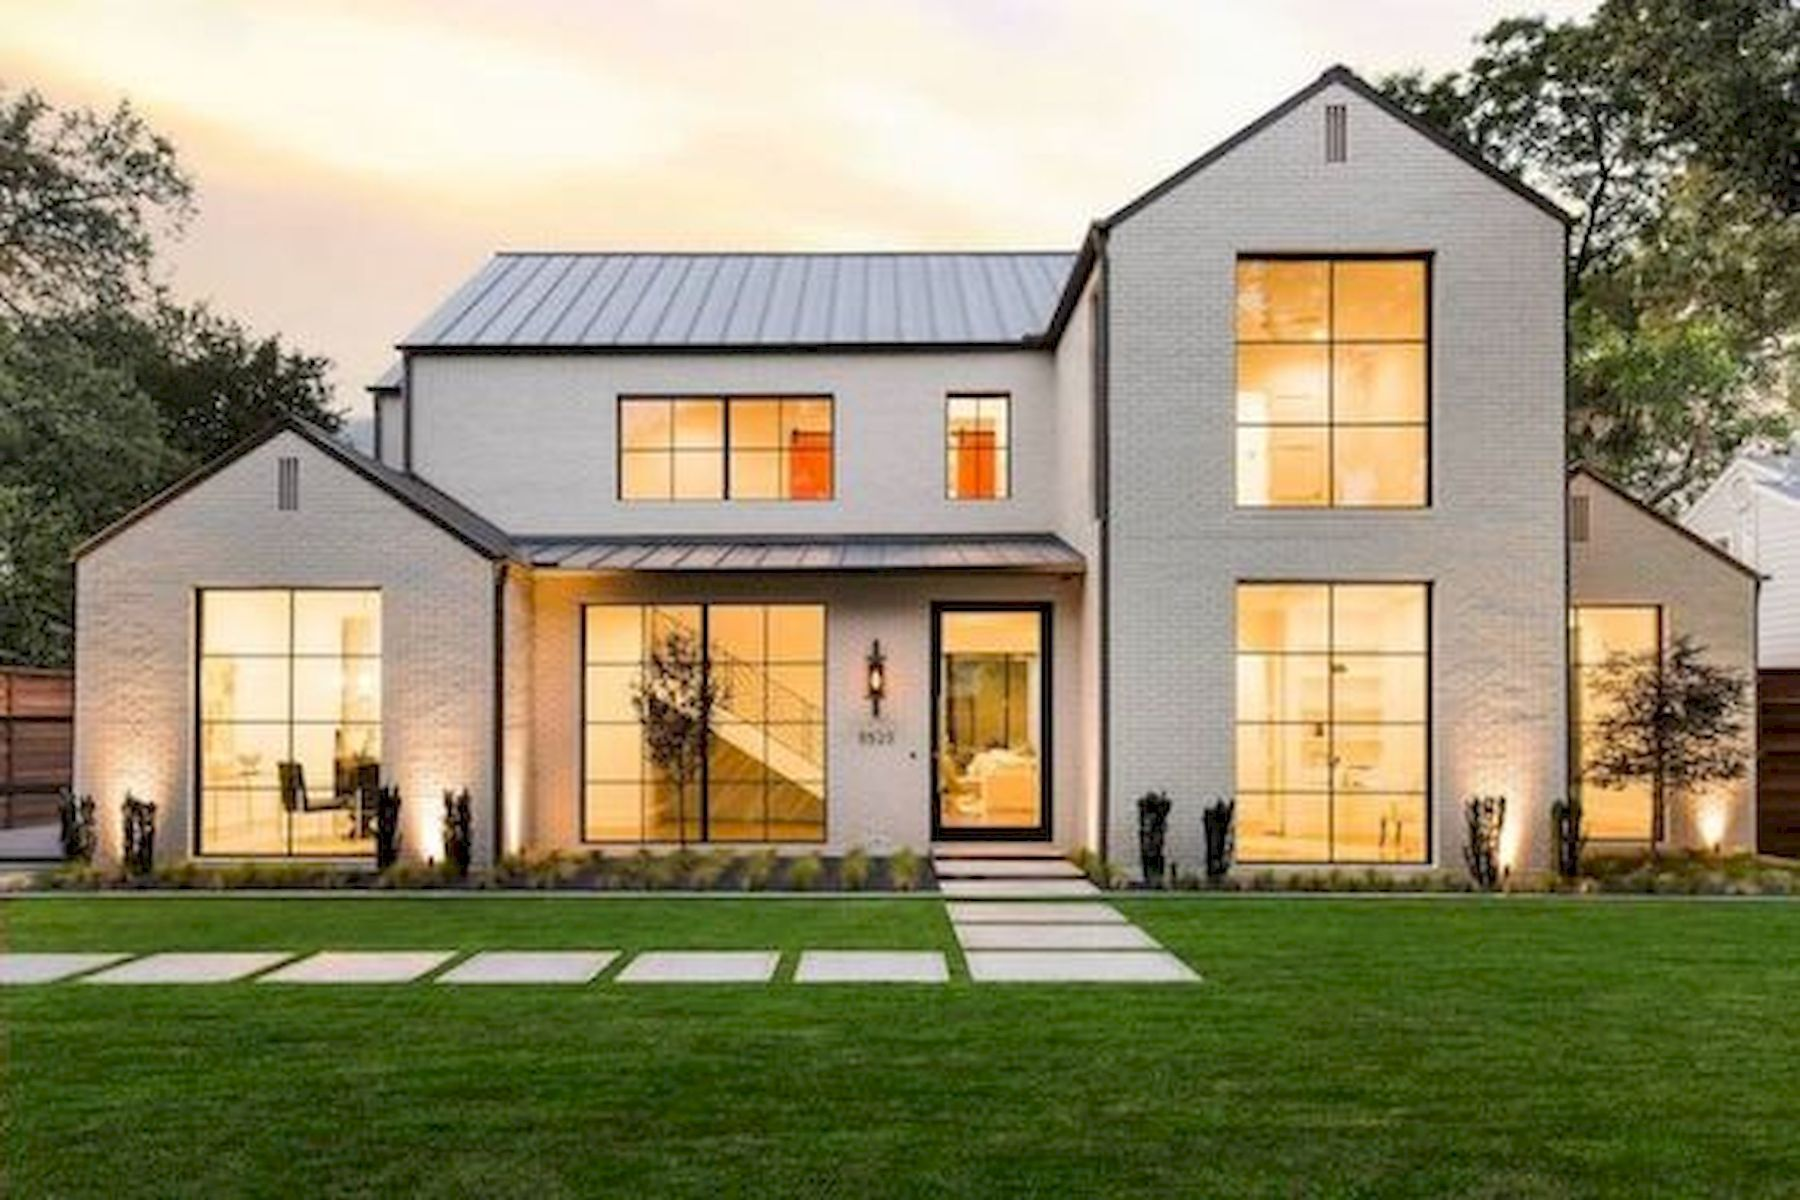 33 Best Modern Farmhouse Exterior House Plans Design Ideas Trend In